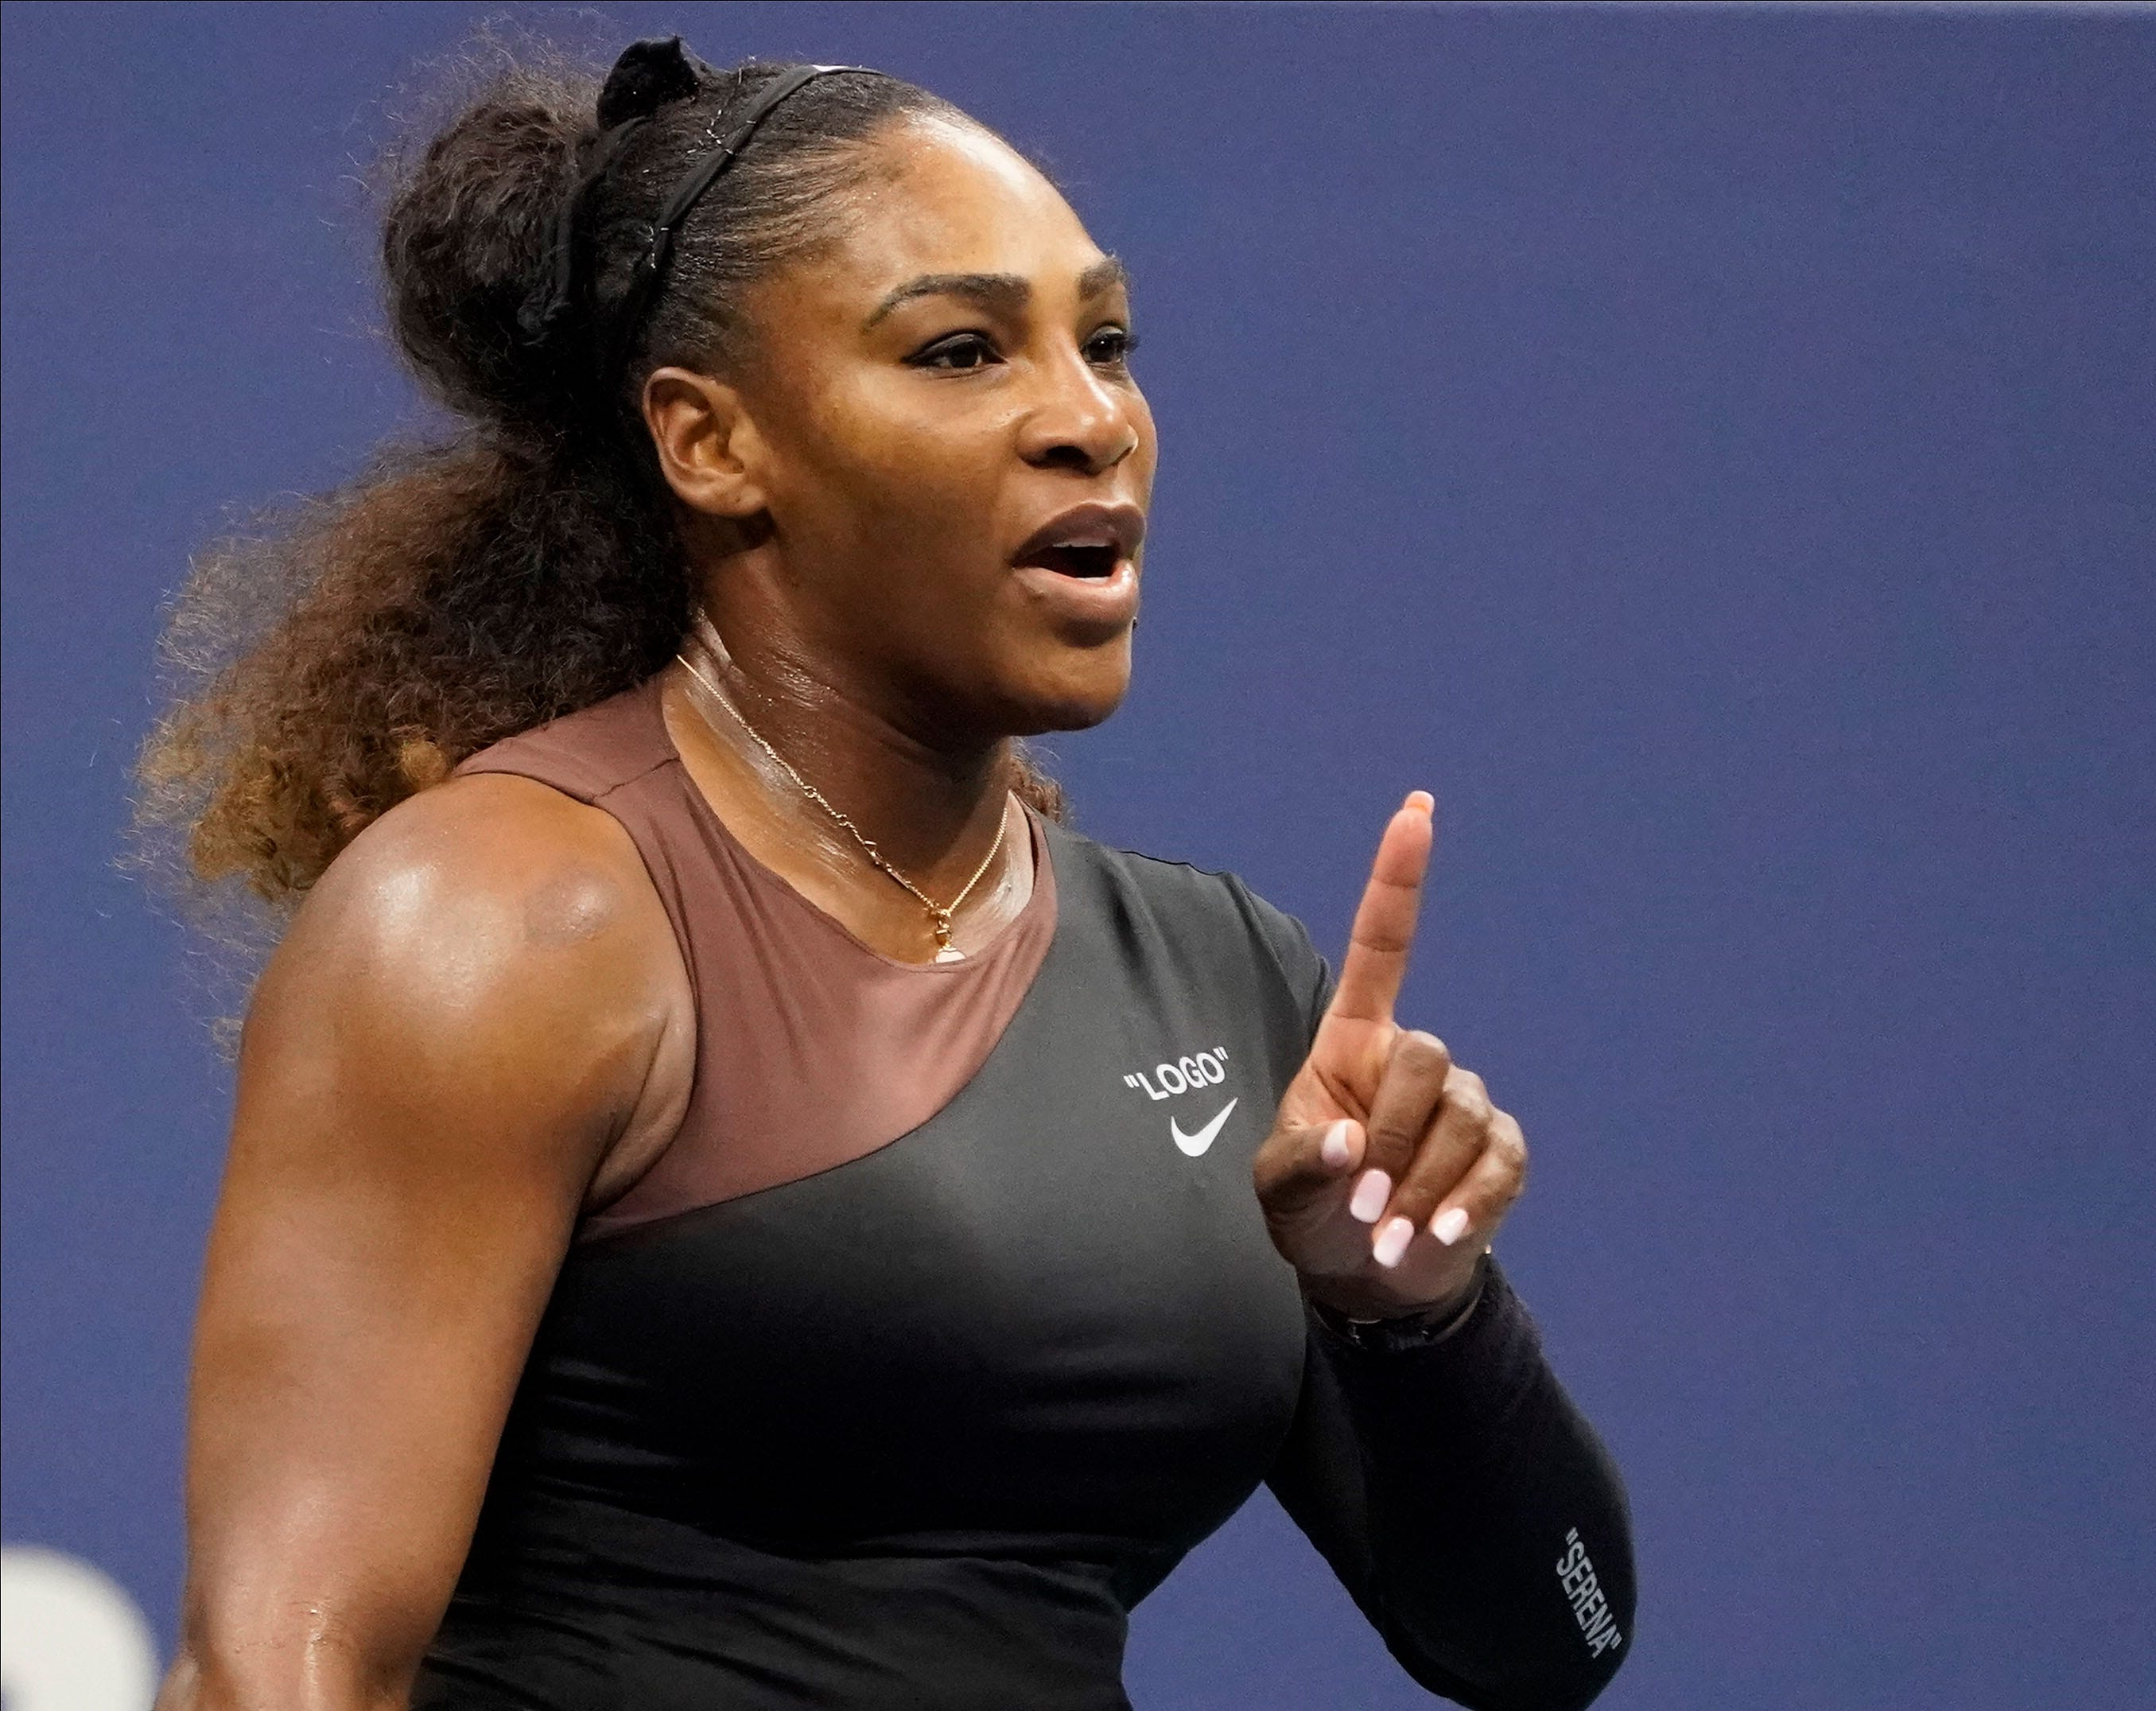 Serena Williams gets game penalty after calling chair umpire a thief